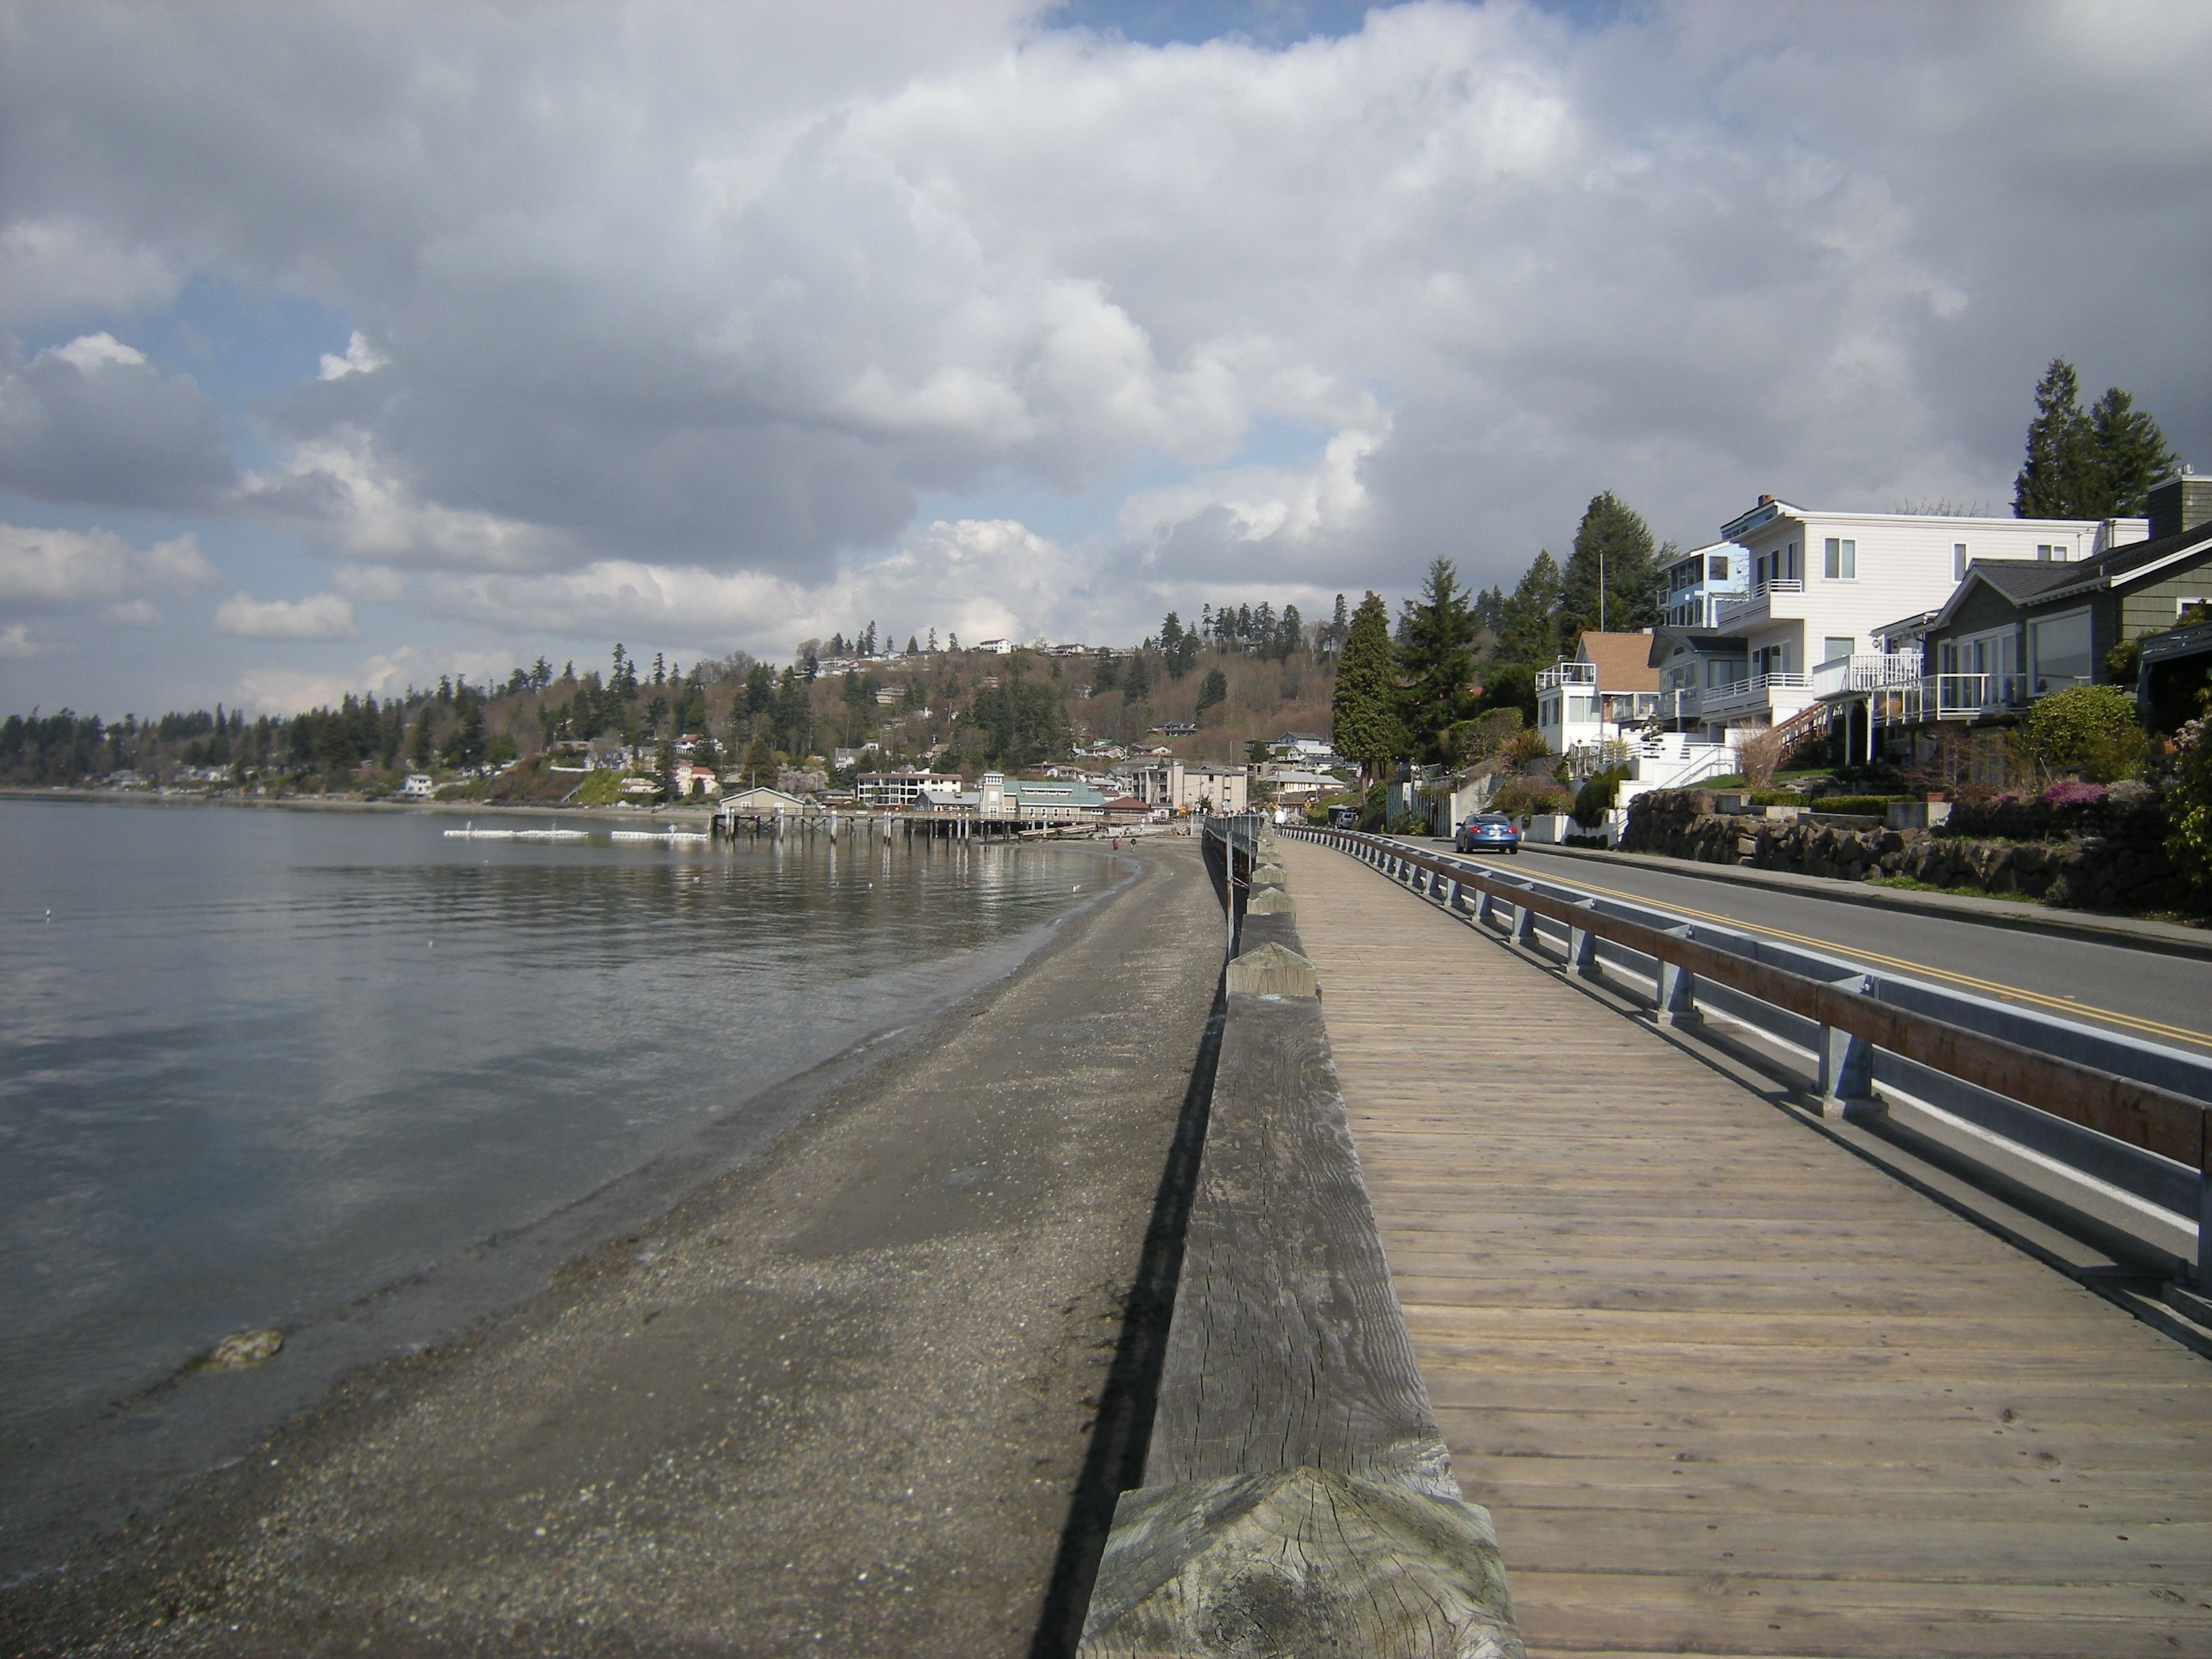 Scenic Boardwalk At Redondo Beach Which Has Its Own Small Pier And Boat Launch Salty S